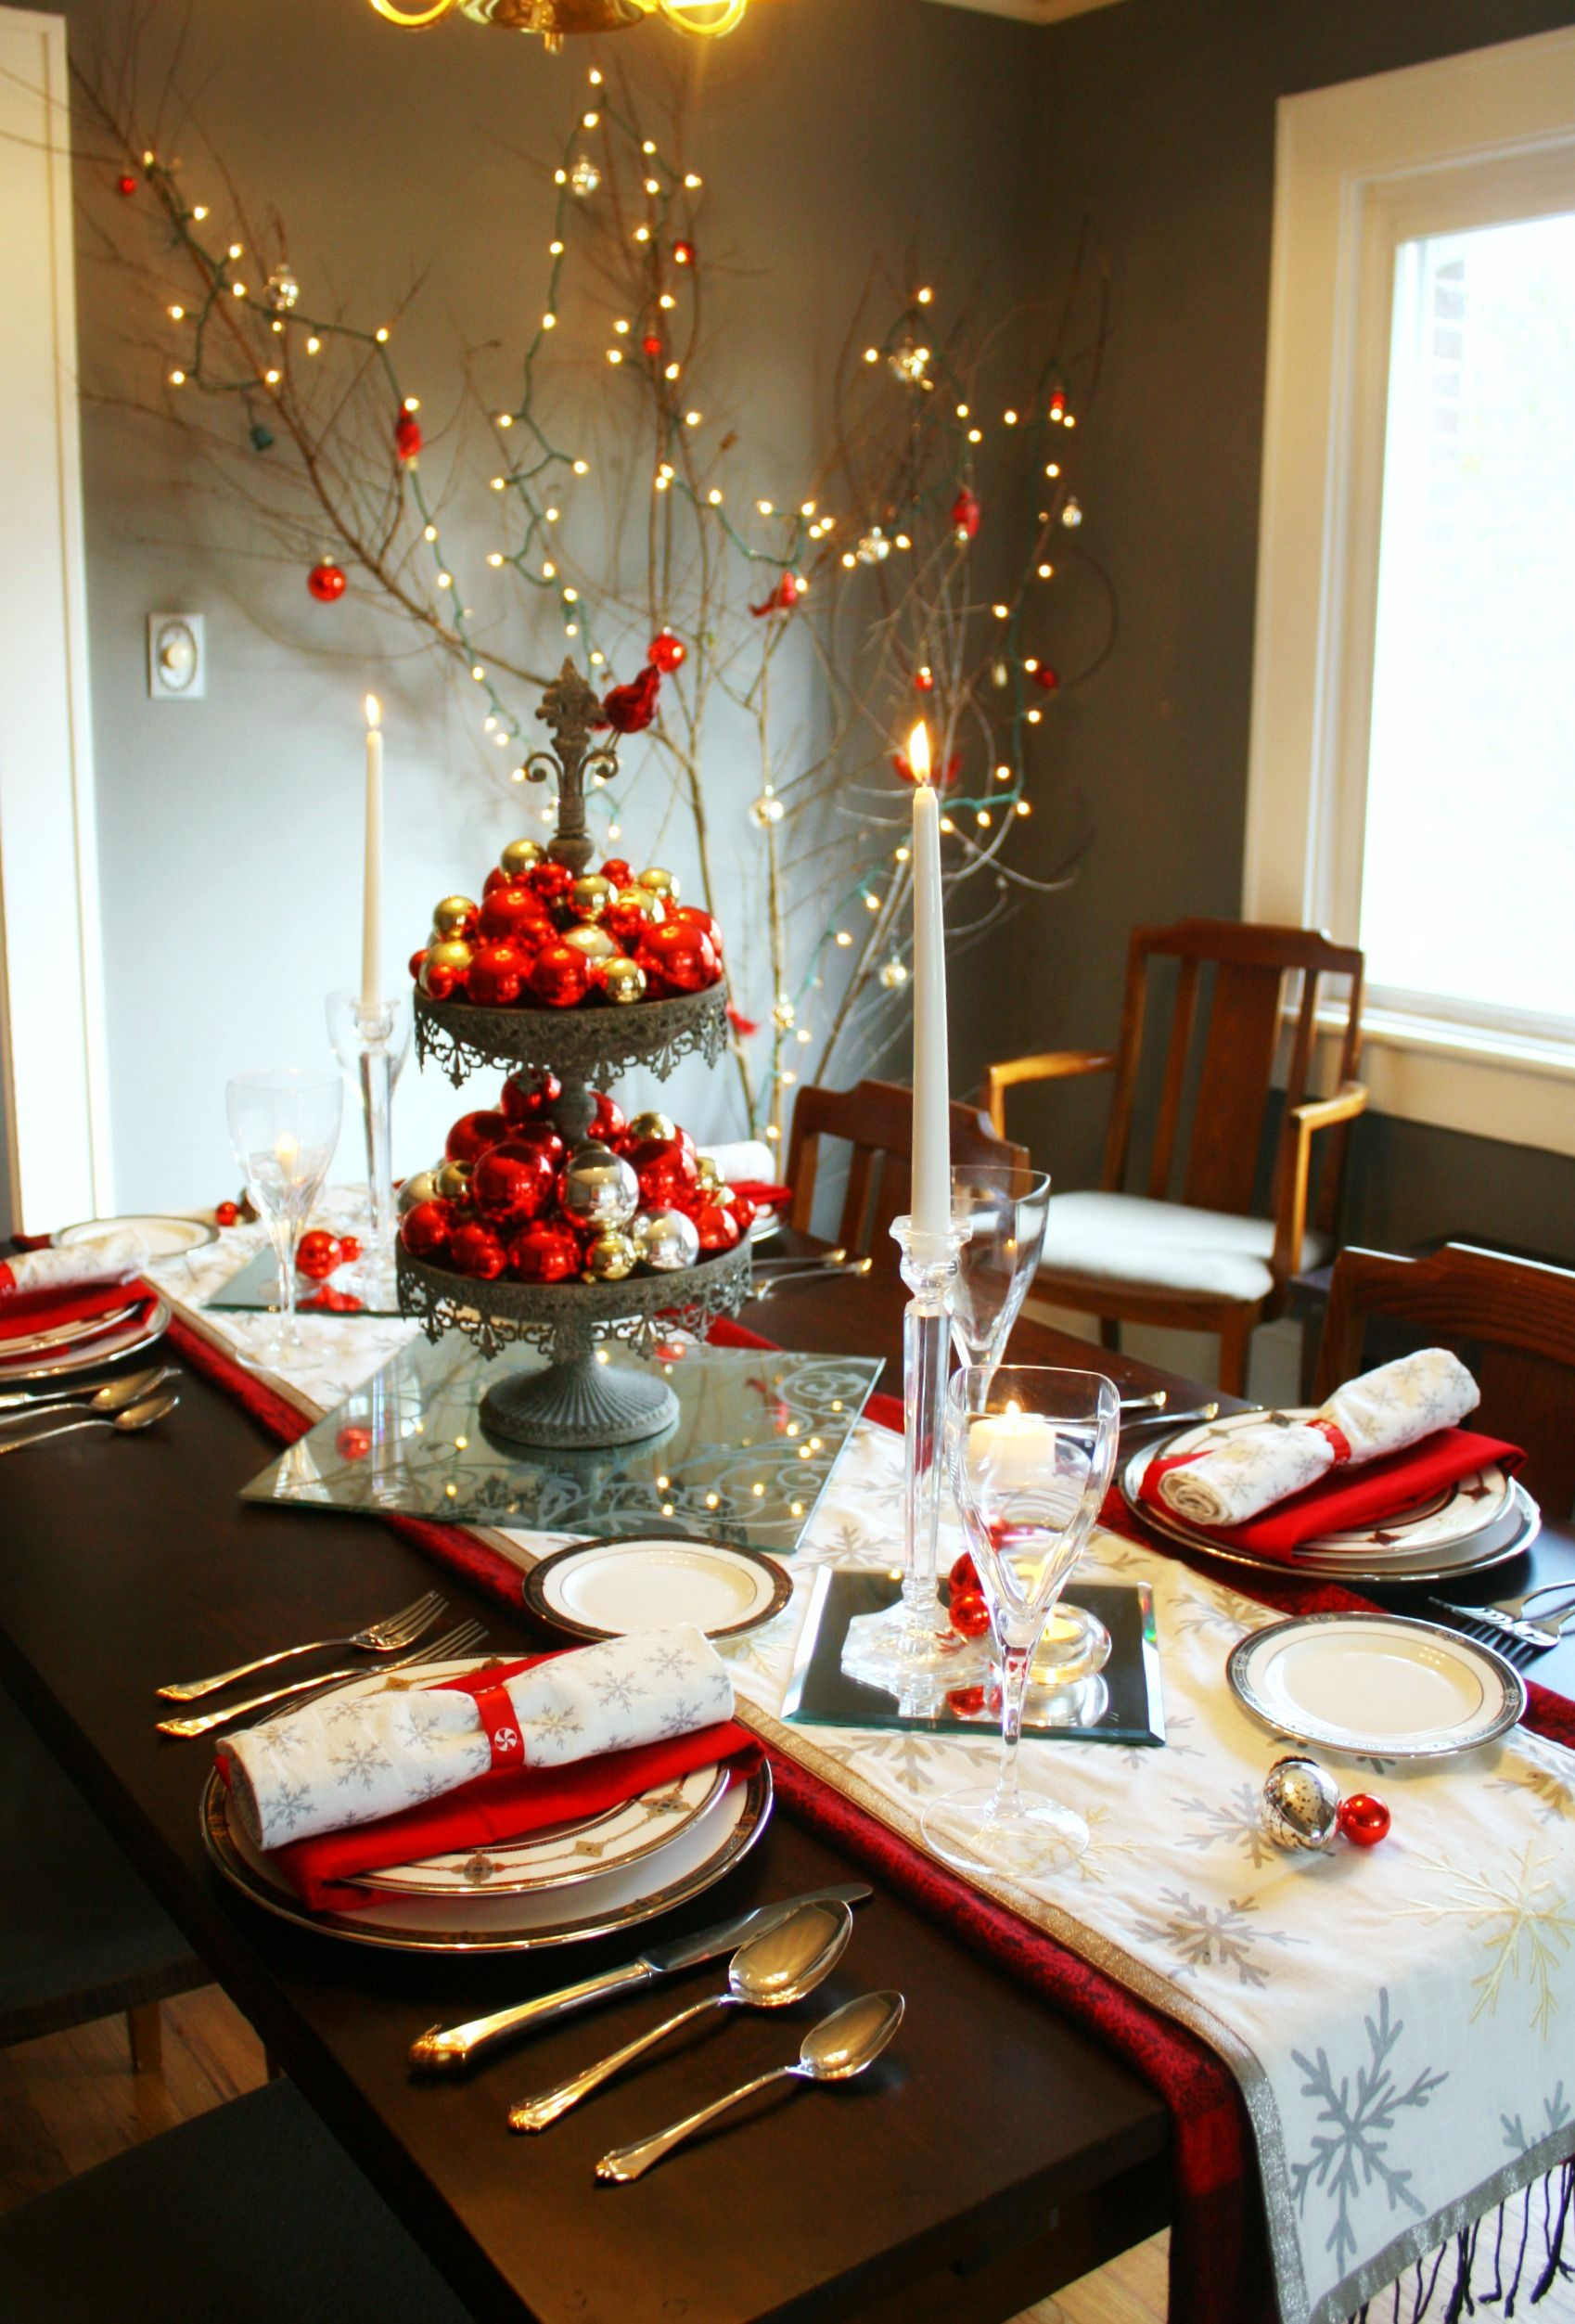 Decoration Ideas Mesmerizing Christmas Table Centerpieces With Candles Also Colorful Tree Attractive Dinner Decorations Idea